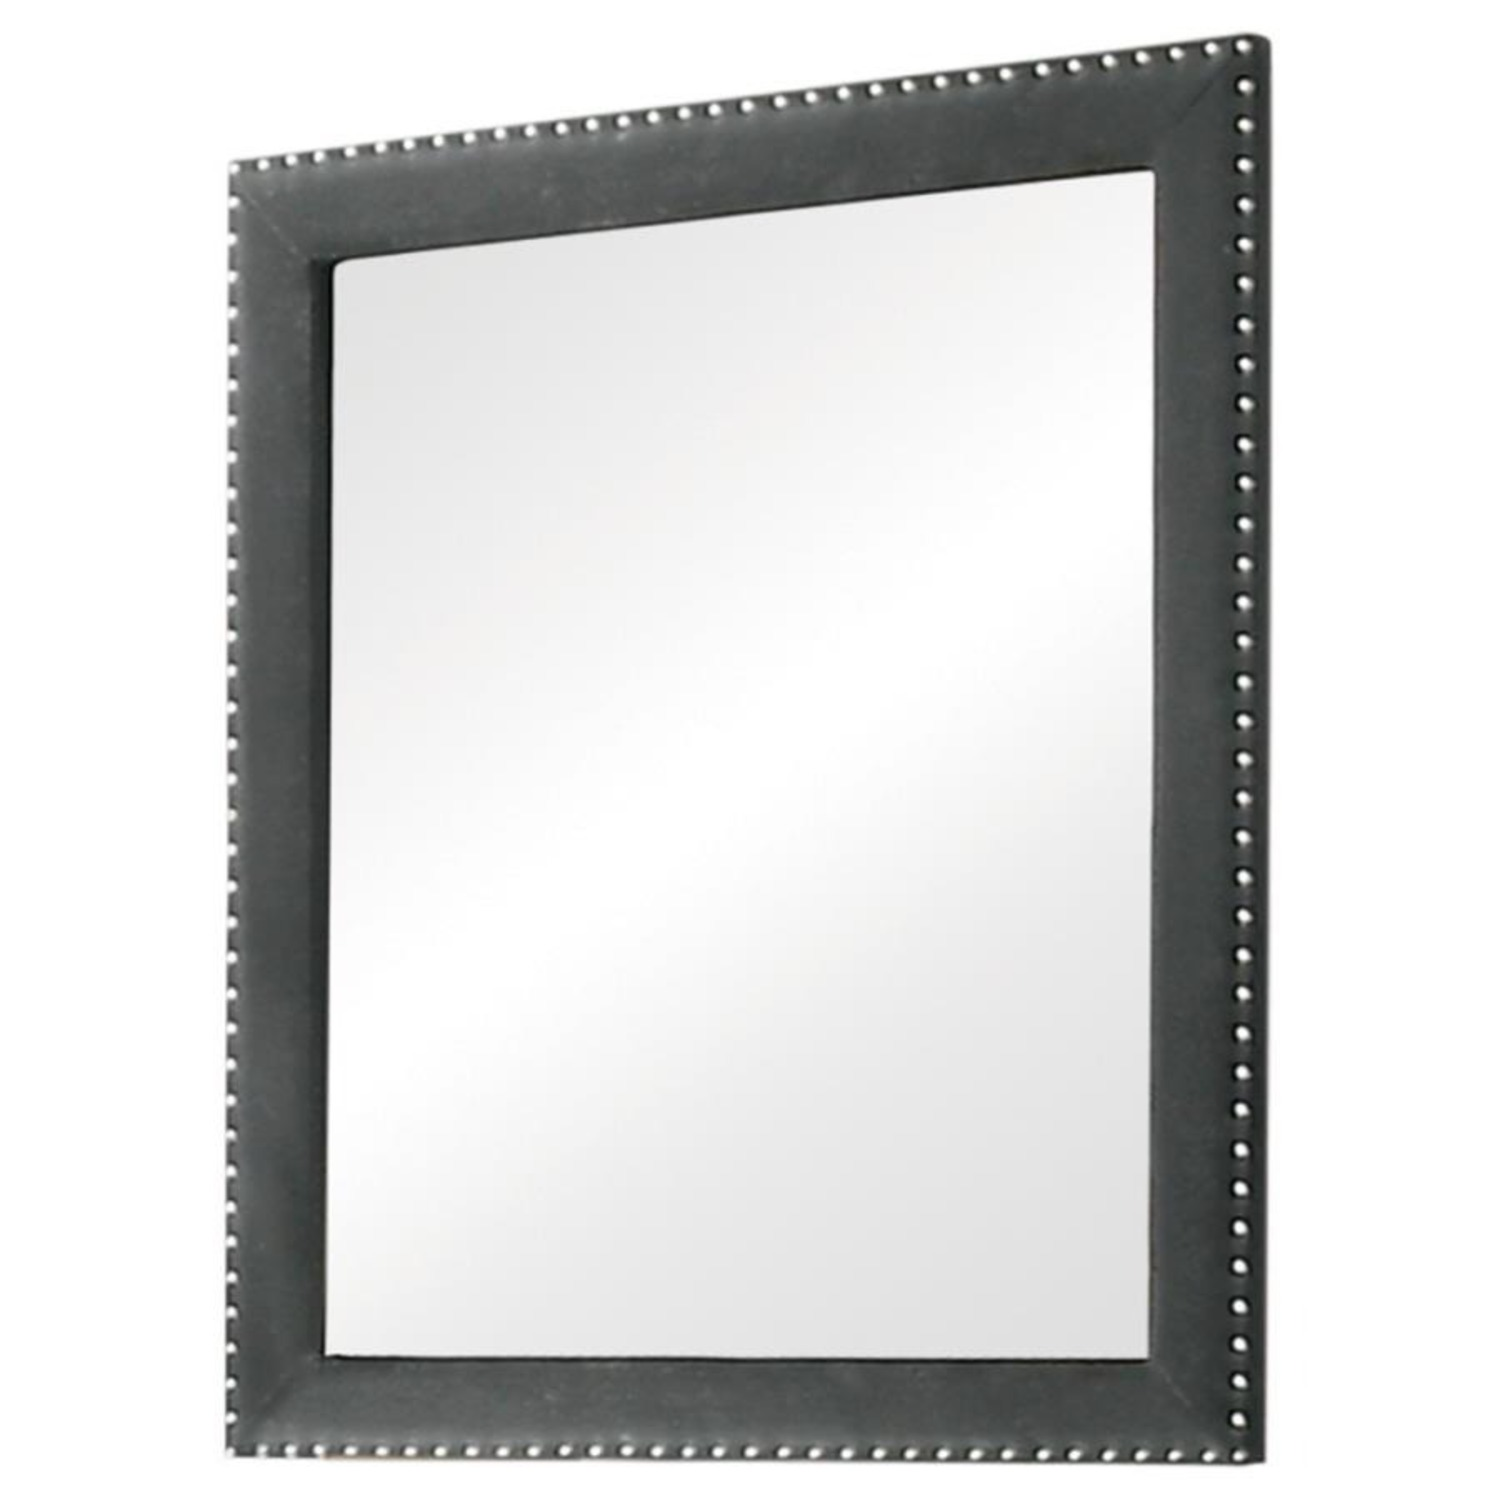 Mirror In Grey Frame Finish W/ Tufted Buttons - image-1